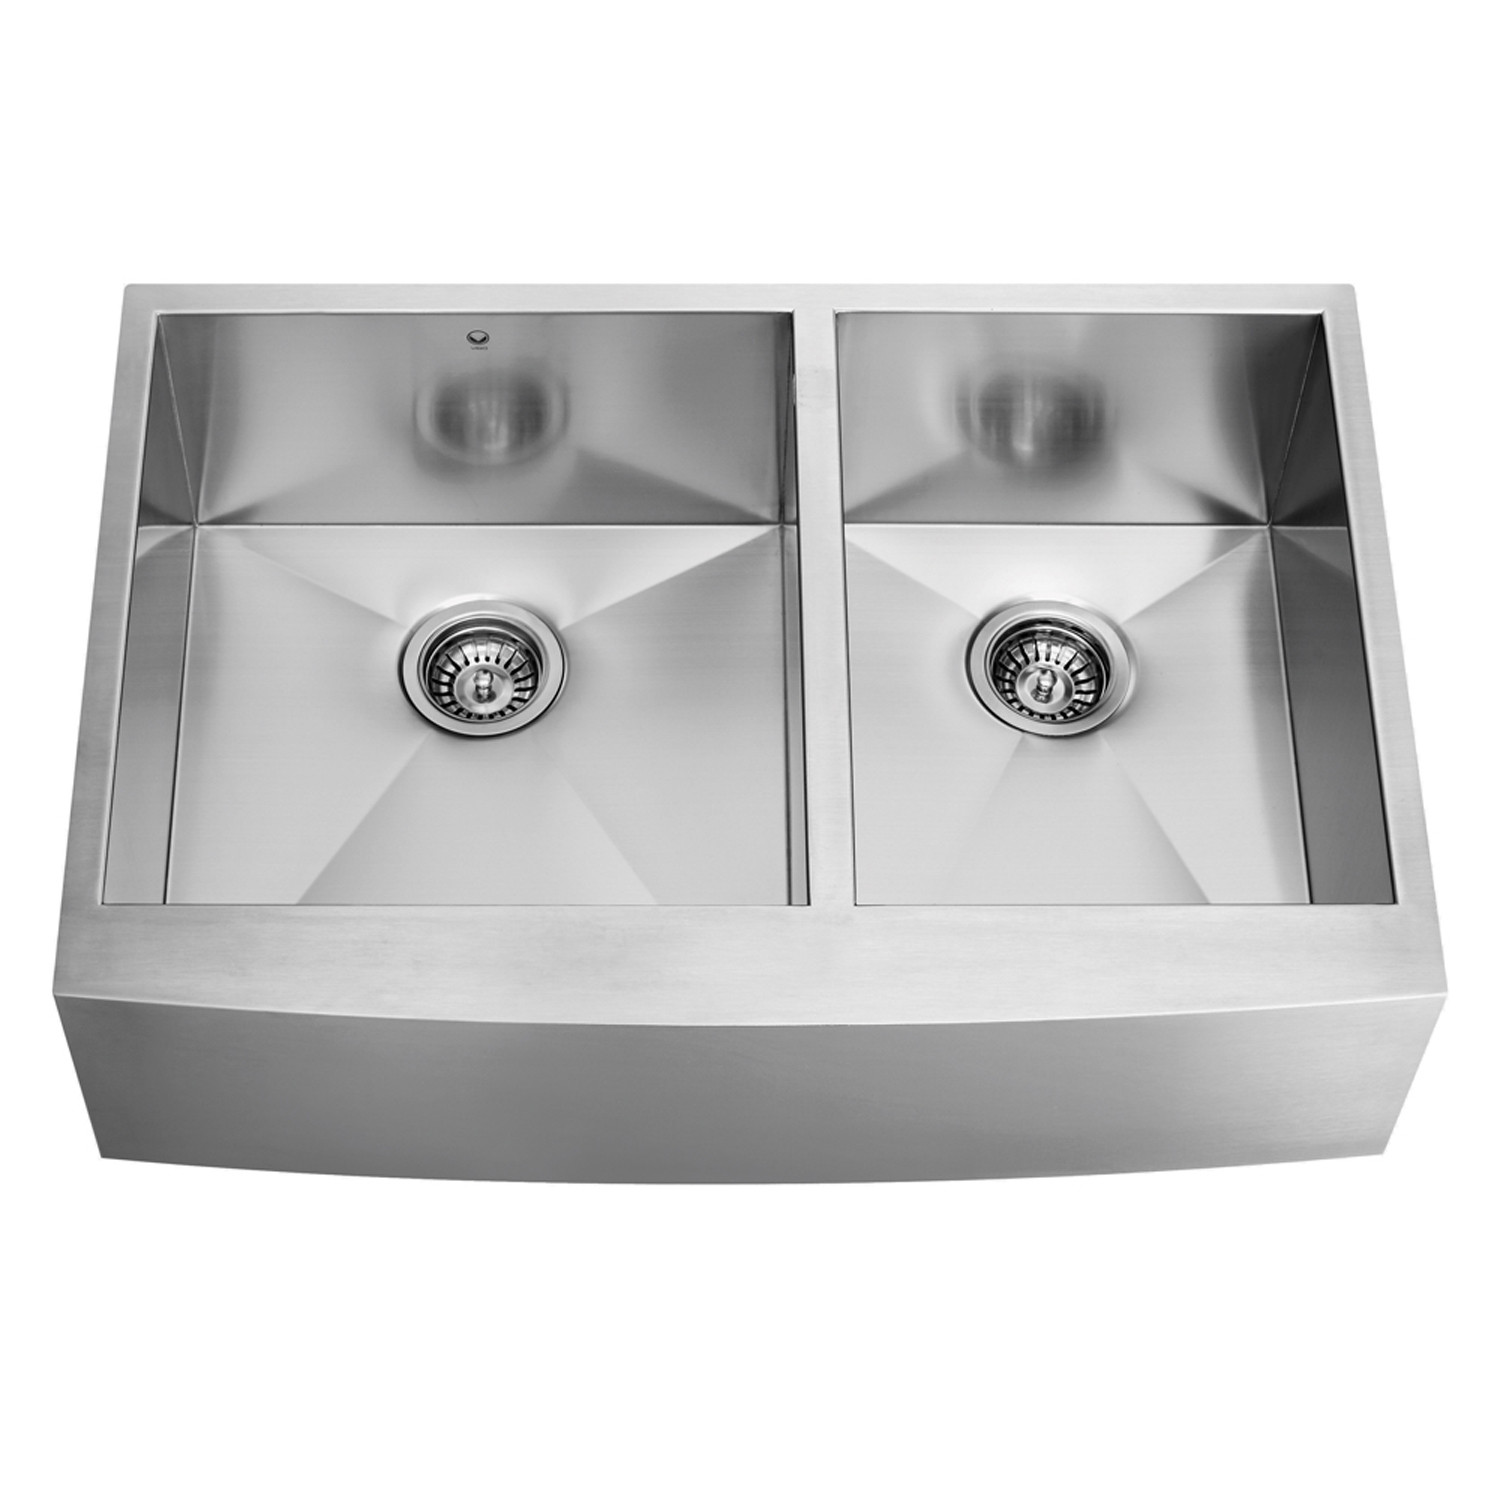 Vigo VG3620BL 36''. Farmhouse Stainless Steel Sink